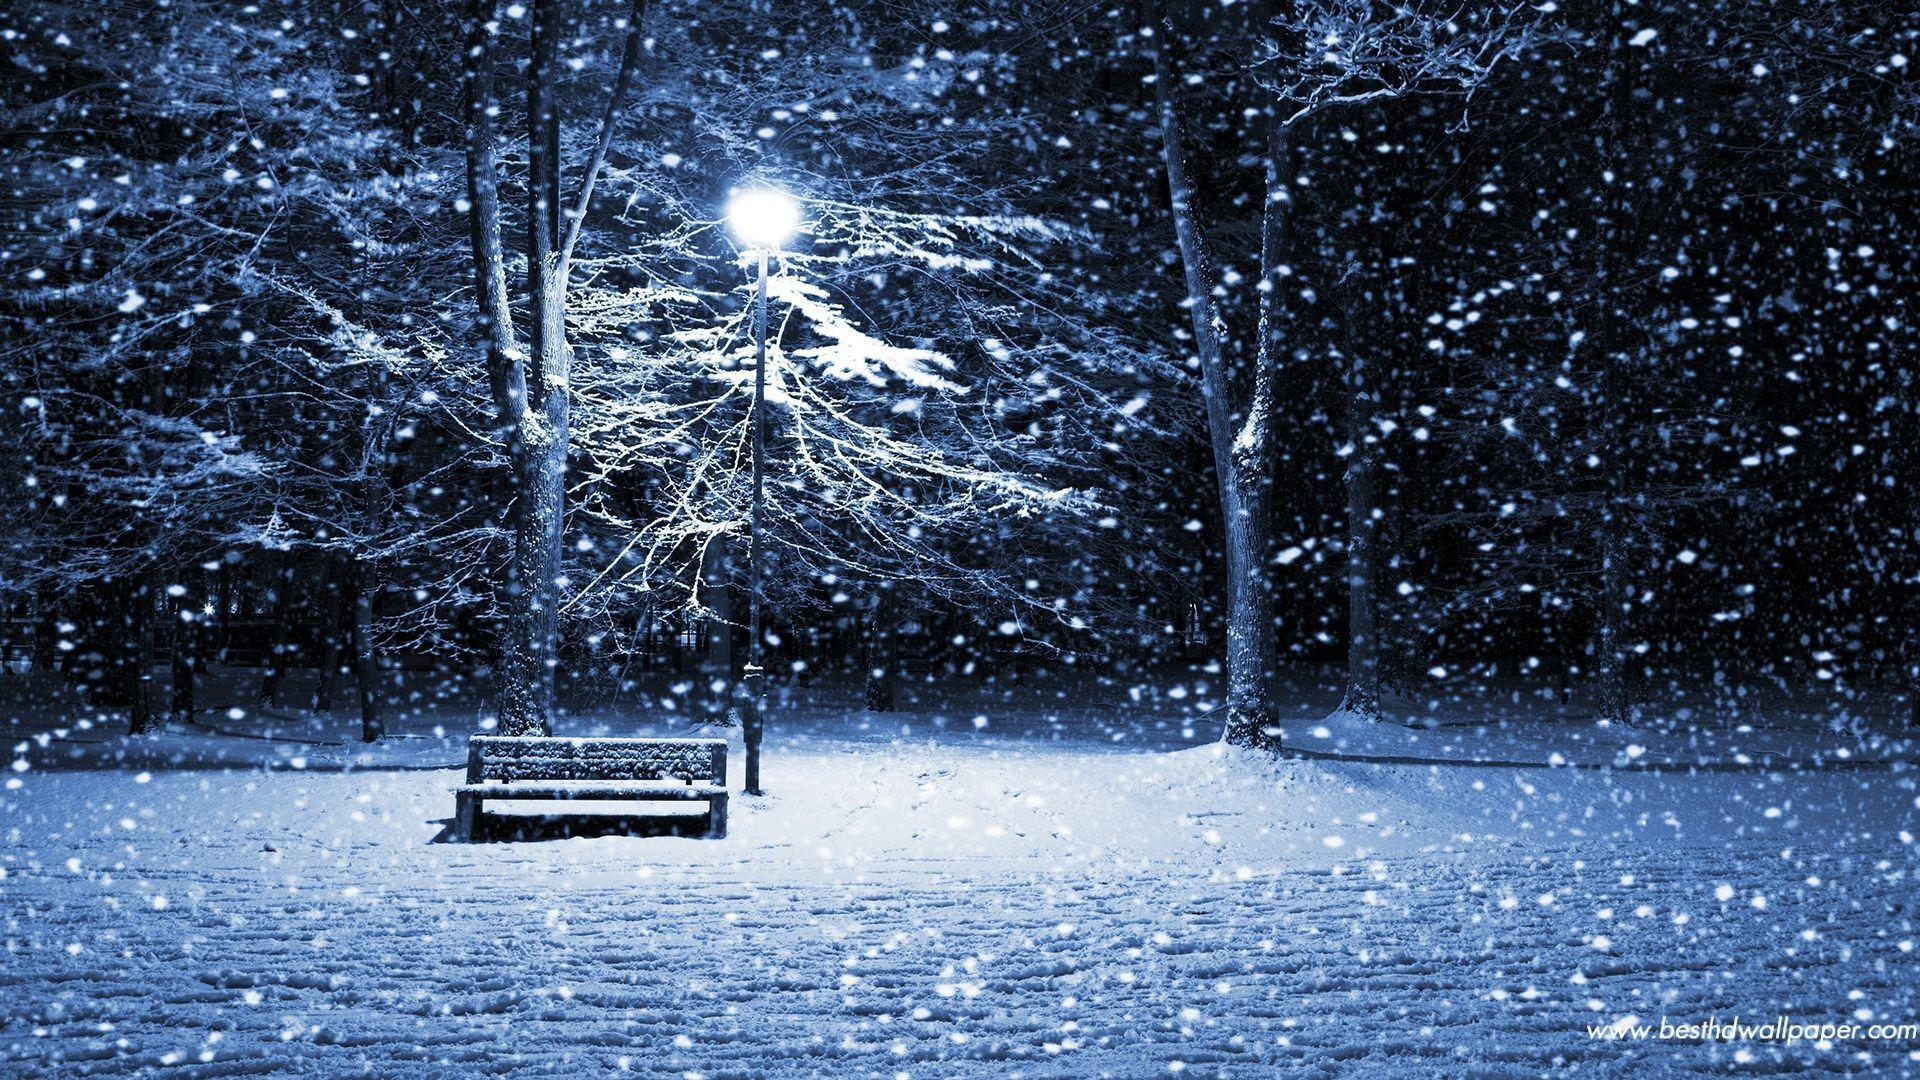 Image For > Christmas Snow Scenes Wallpapers